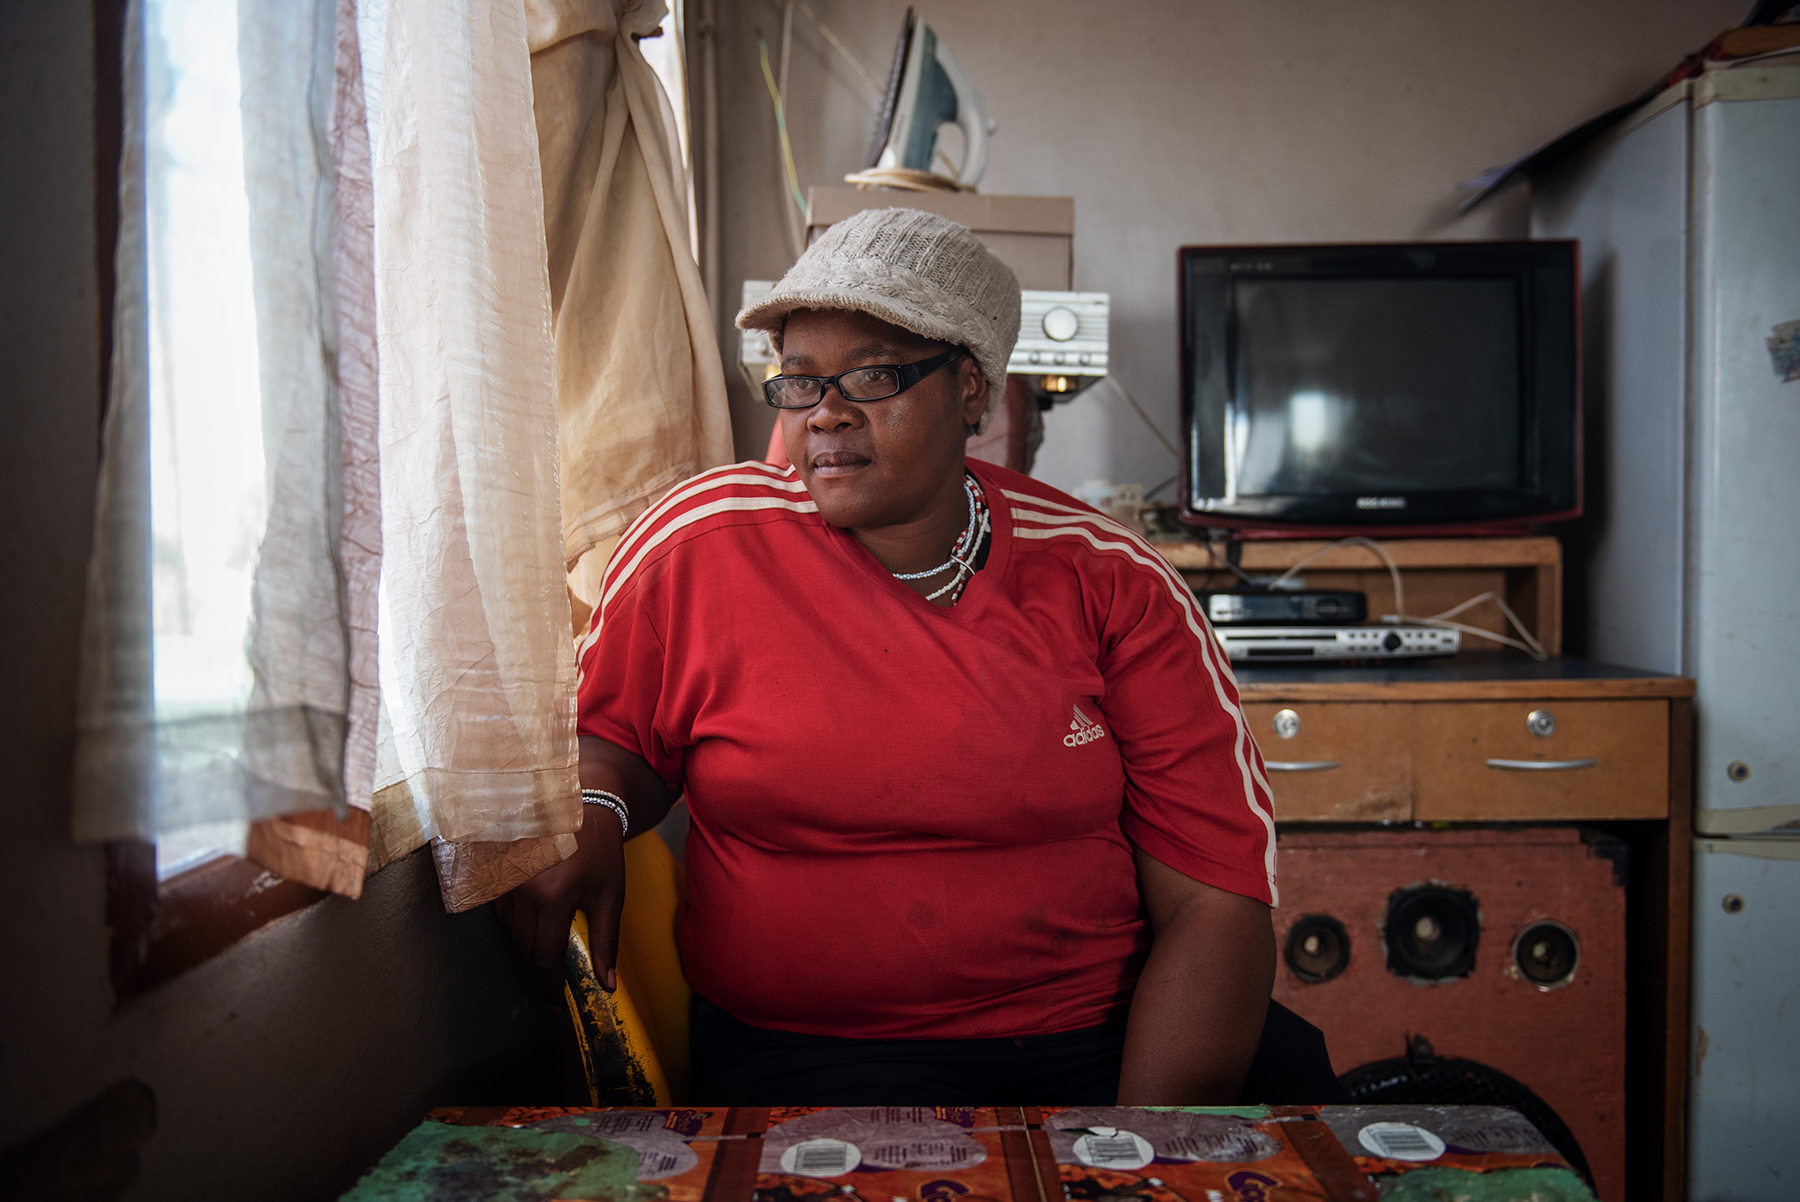 Eva Mokoena (L), a 33 years old South African informal waste picker, poses for a portrait in her house in the outskirt of  Johannesburg, South Africa, on June 28, 2019.